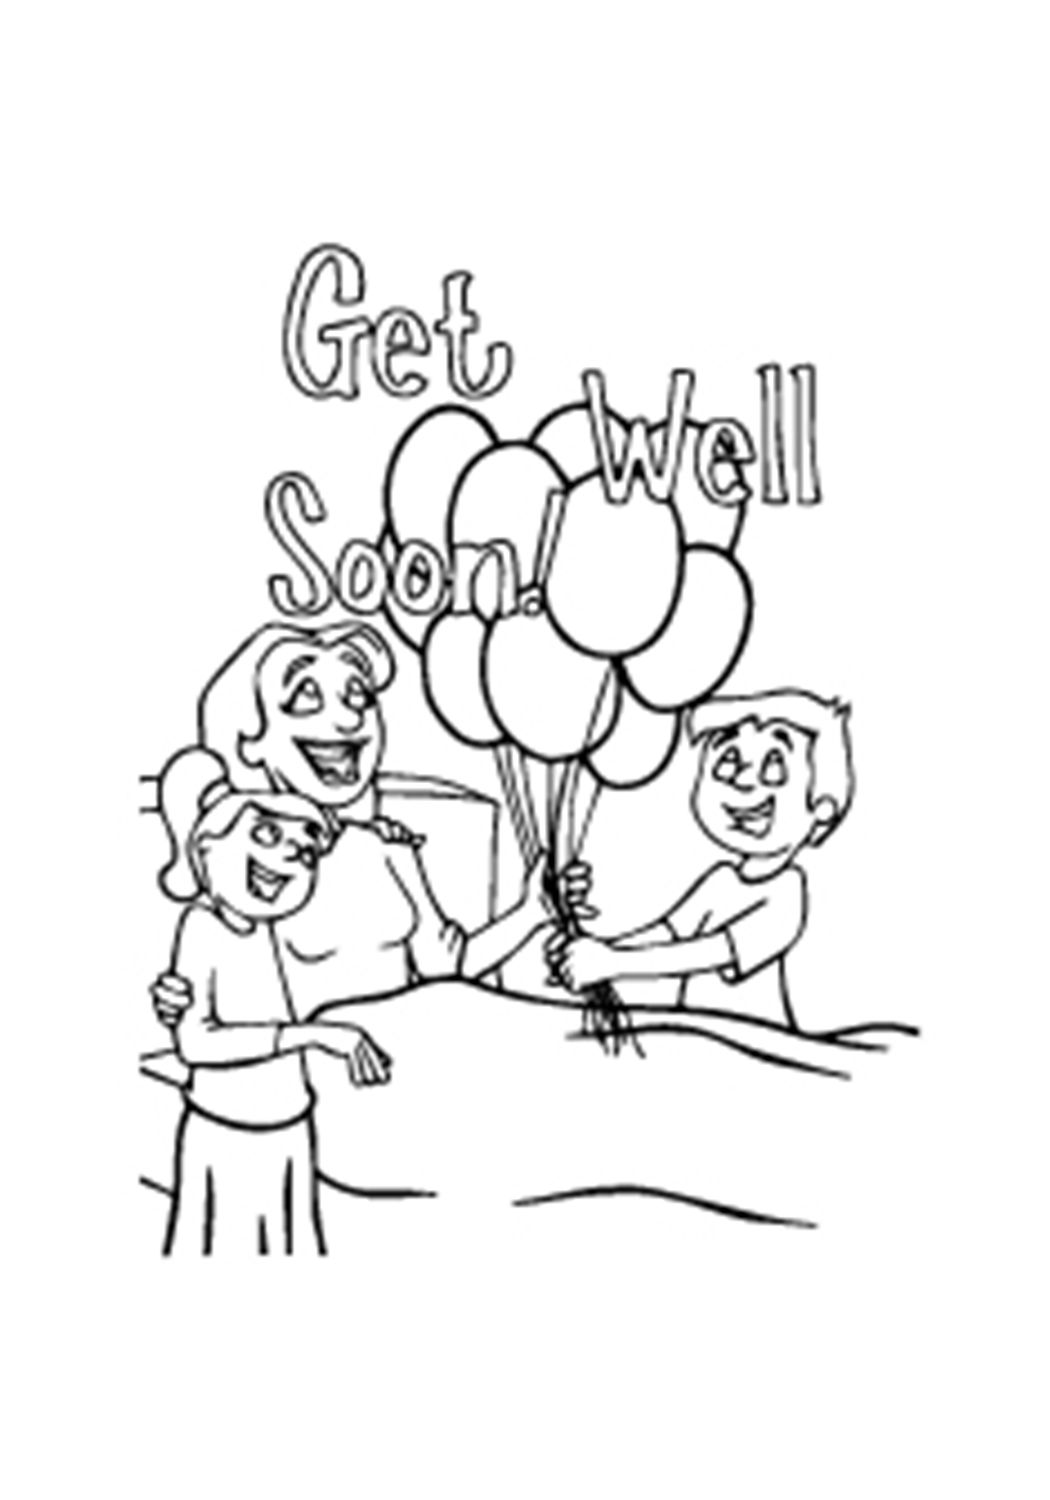 Good Doctor Coloring Pages Design